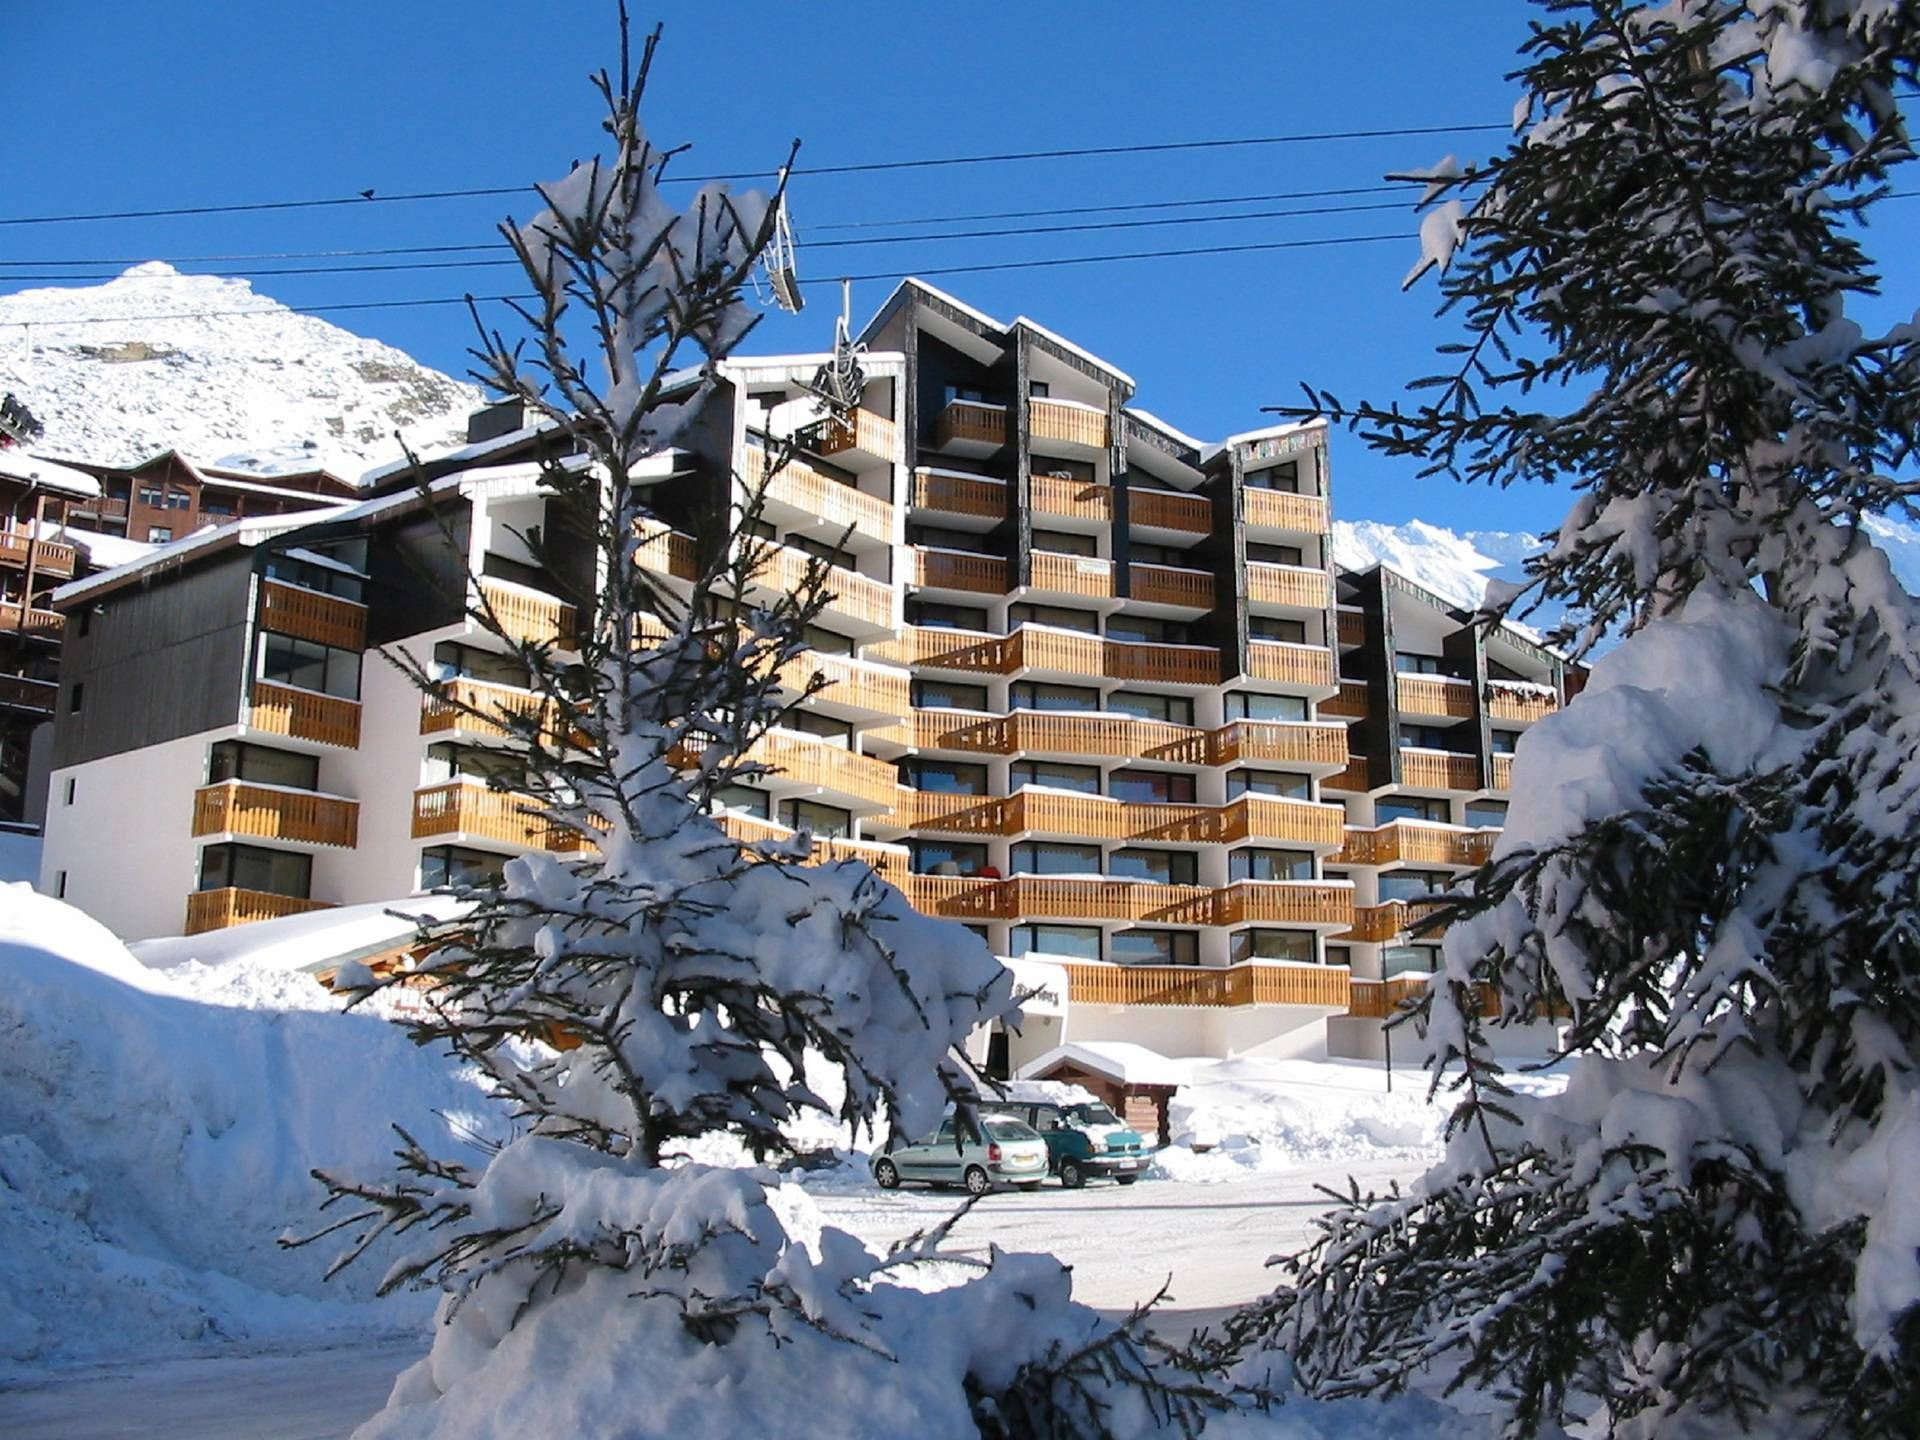 ETERLOUS 26 / 2 ROOMS 6 PERSONS - 1 BRONZE SNOWFLAKE - VTI